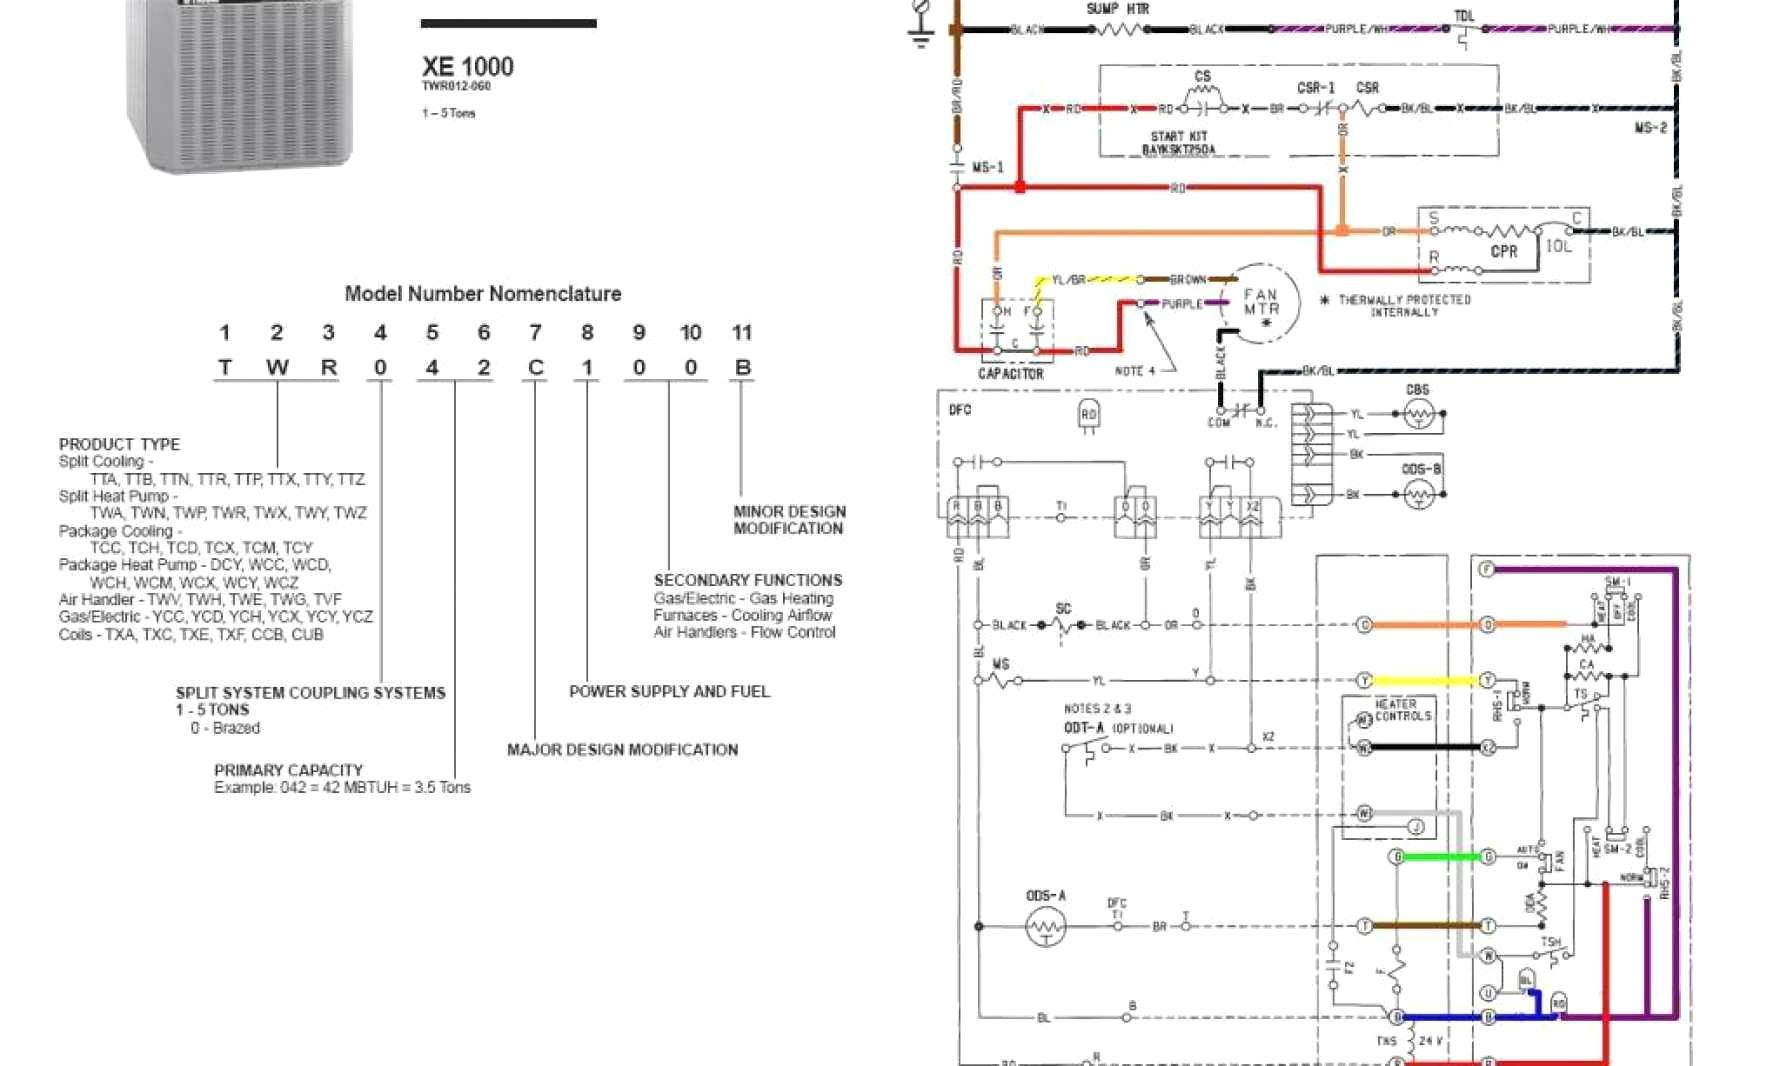 Trane Ac Fuse Box - Wiring Diagram filter message - message.romagranata.it | Hvac Wiring Diagram For Trane 1200 Xl |  | Roma Granata